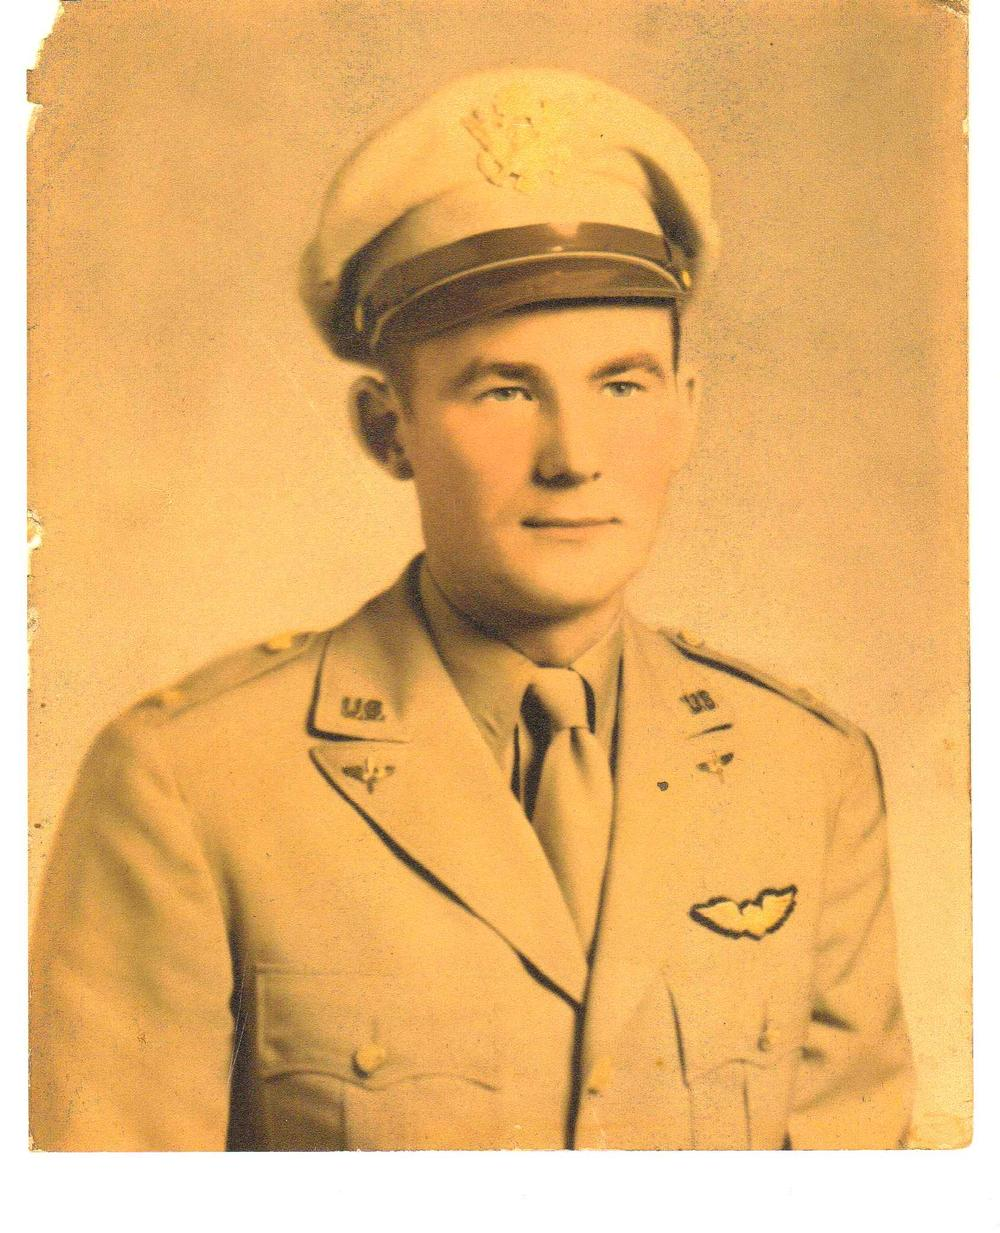 Lt. Joseph J. Auld (courtesy of Gini Doolittle)